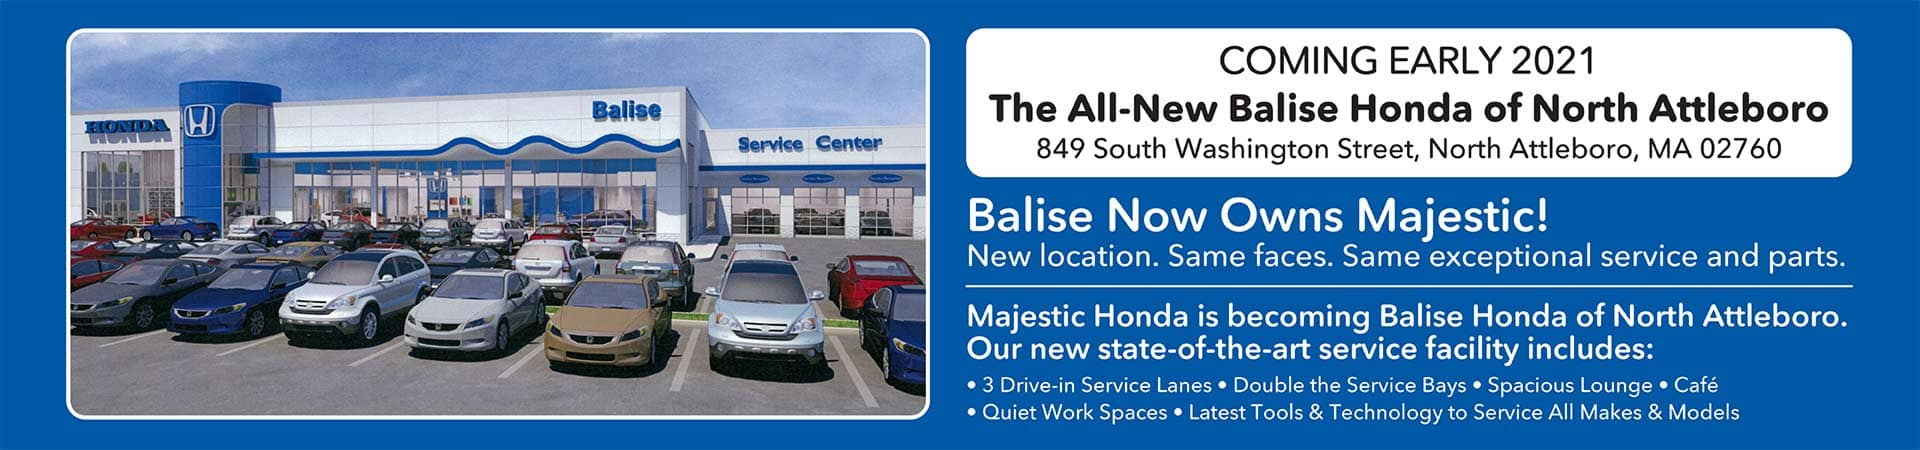 The All-New Balise Honda of North Attleboro